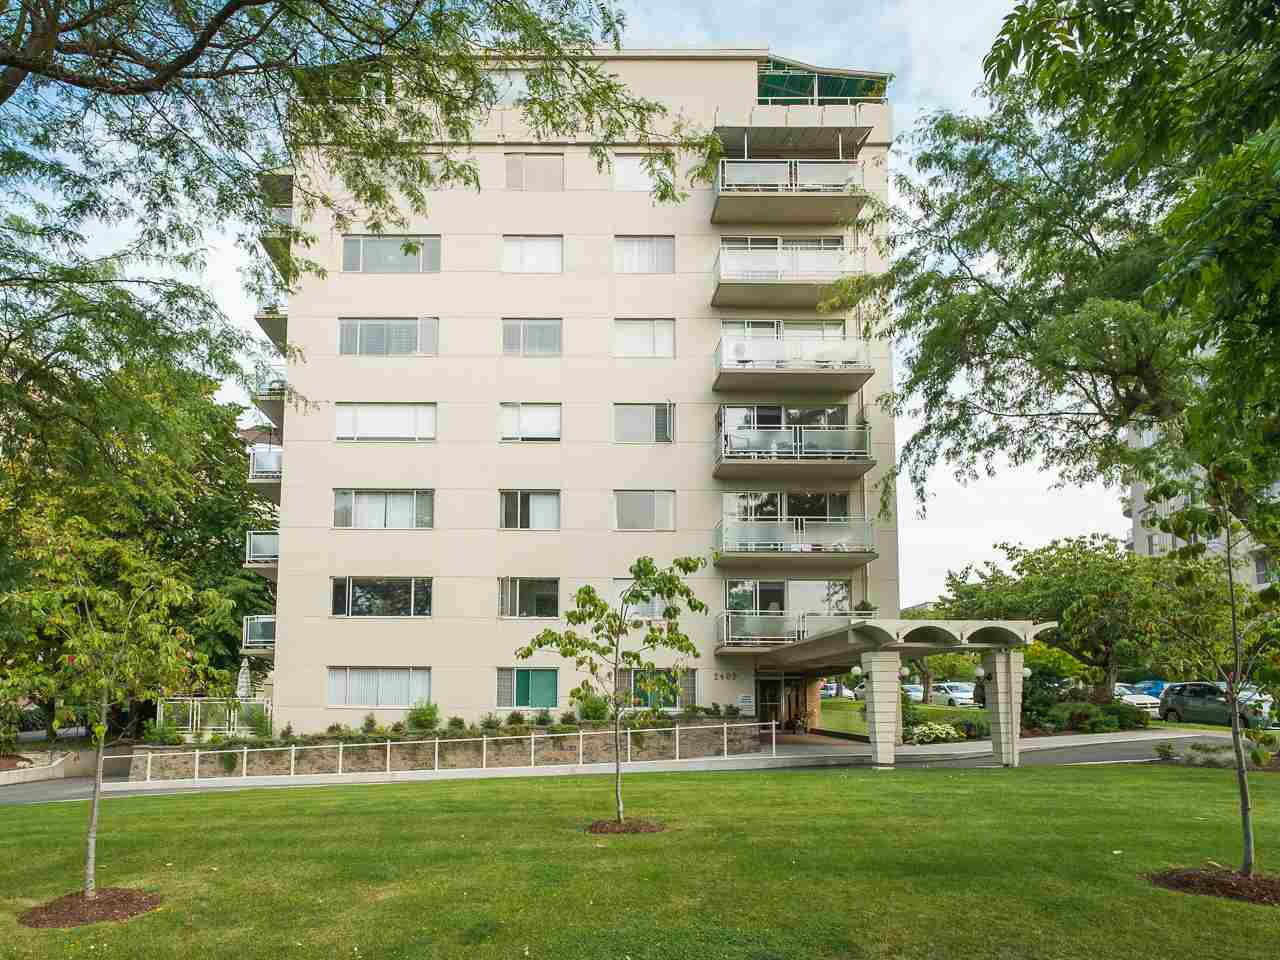 "Main Photo: 303 2409 W 43RD Avenue in Vancouver: Kerrisdale Condo for sale in ""Balsam Court"" (Vancouver West)  : MLS®# R2480471"